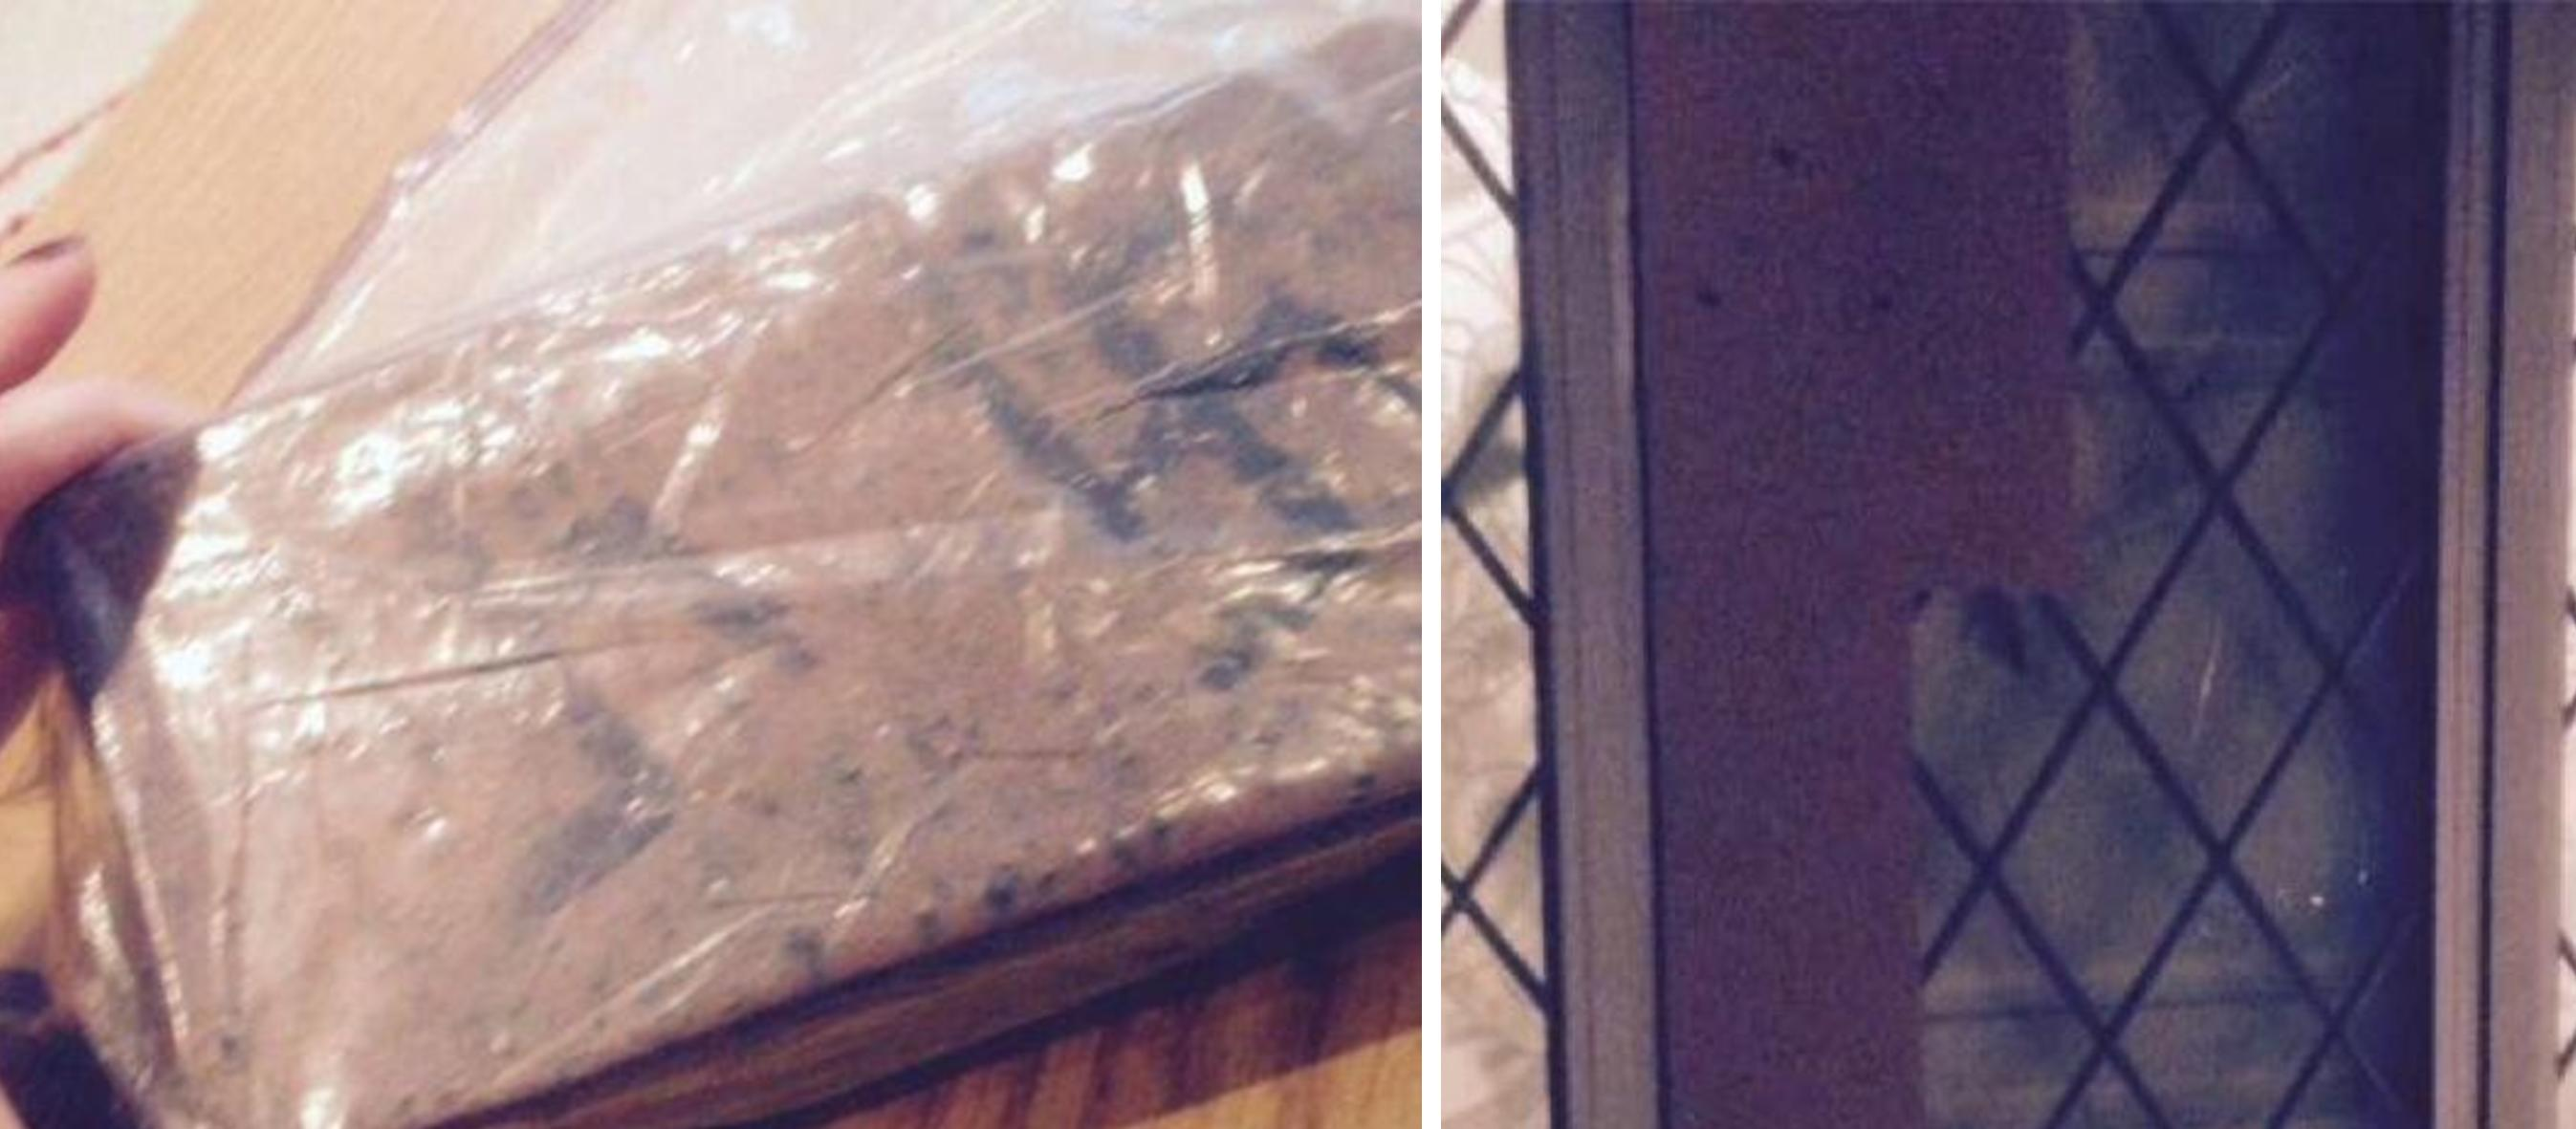 UK: Brick thrown through Jewish home window in spate of anti-Semitic attacks over weekend